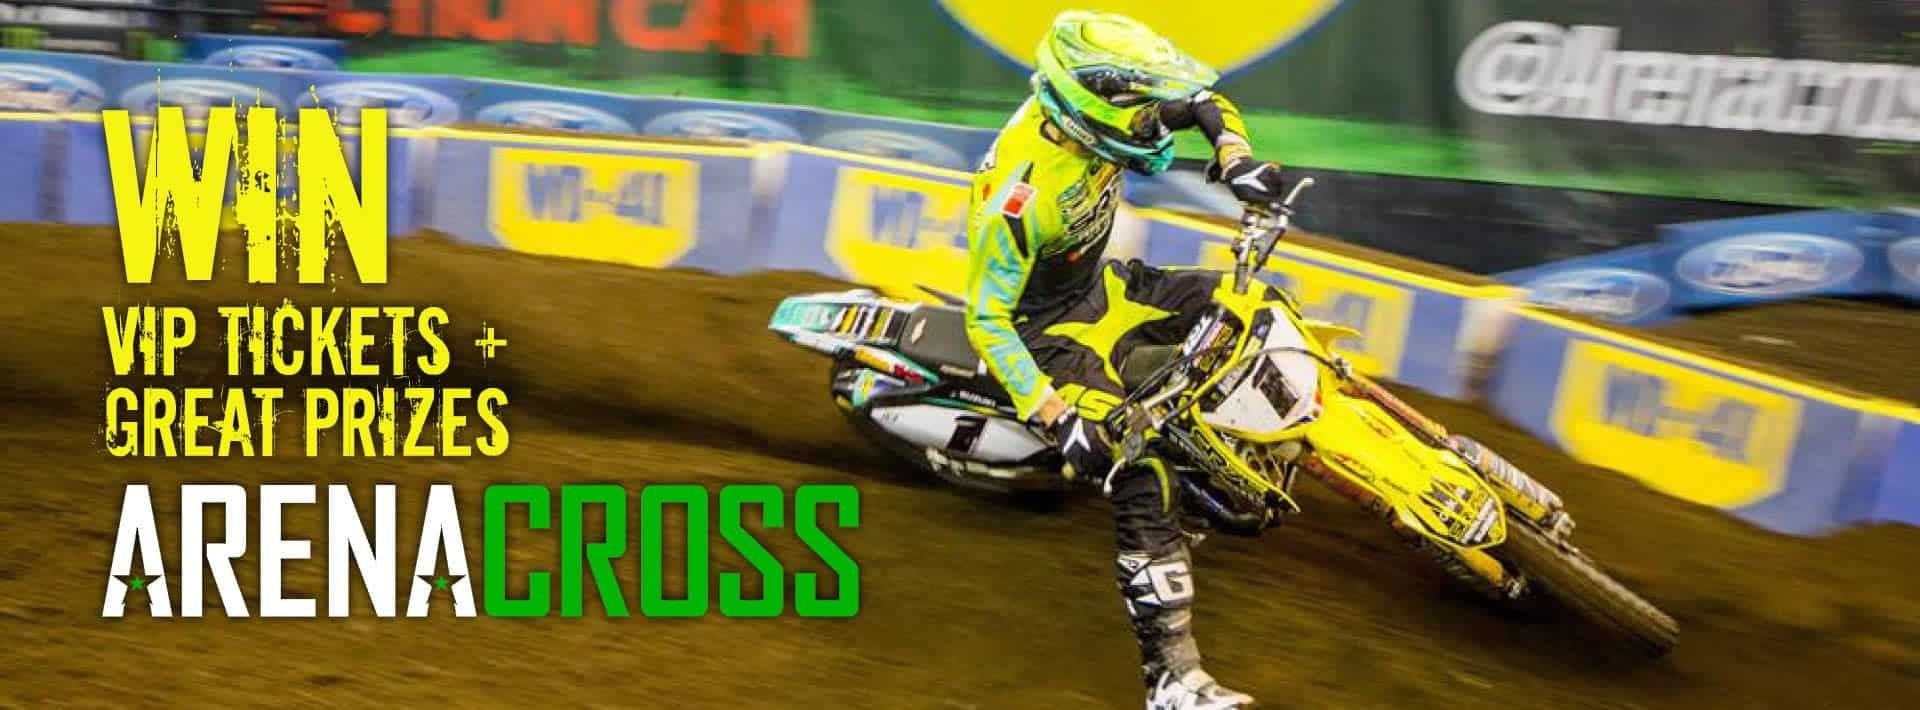 WD-40 are proud Arenacross prize giveaway